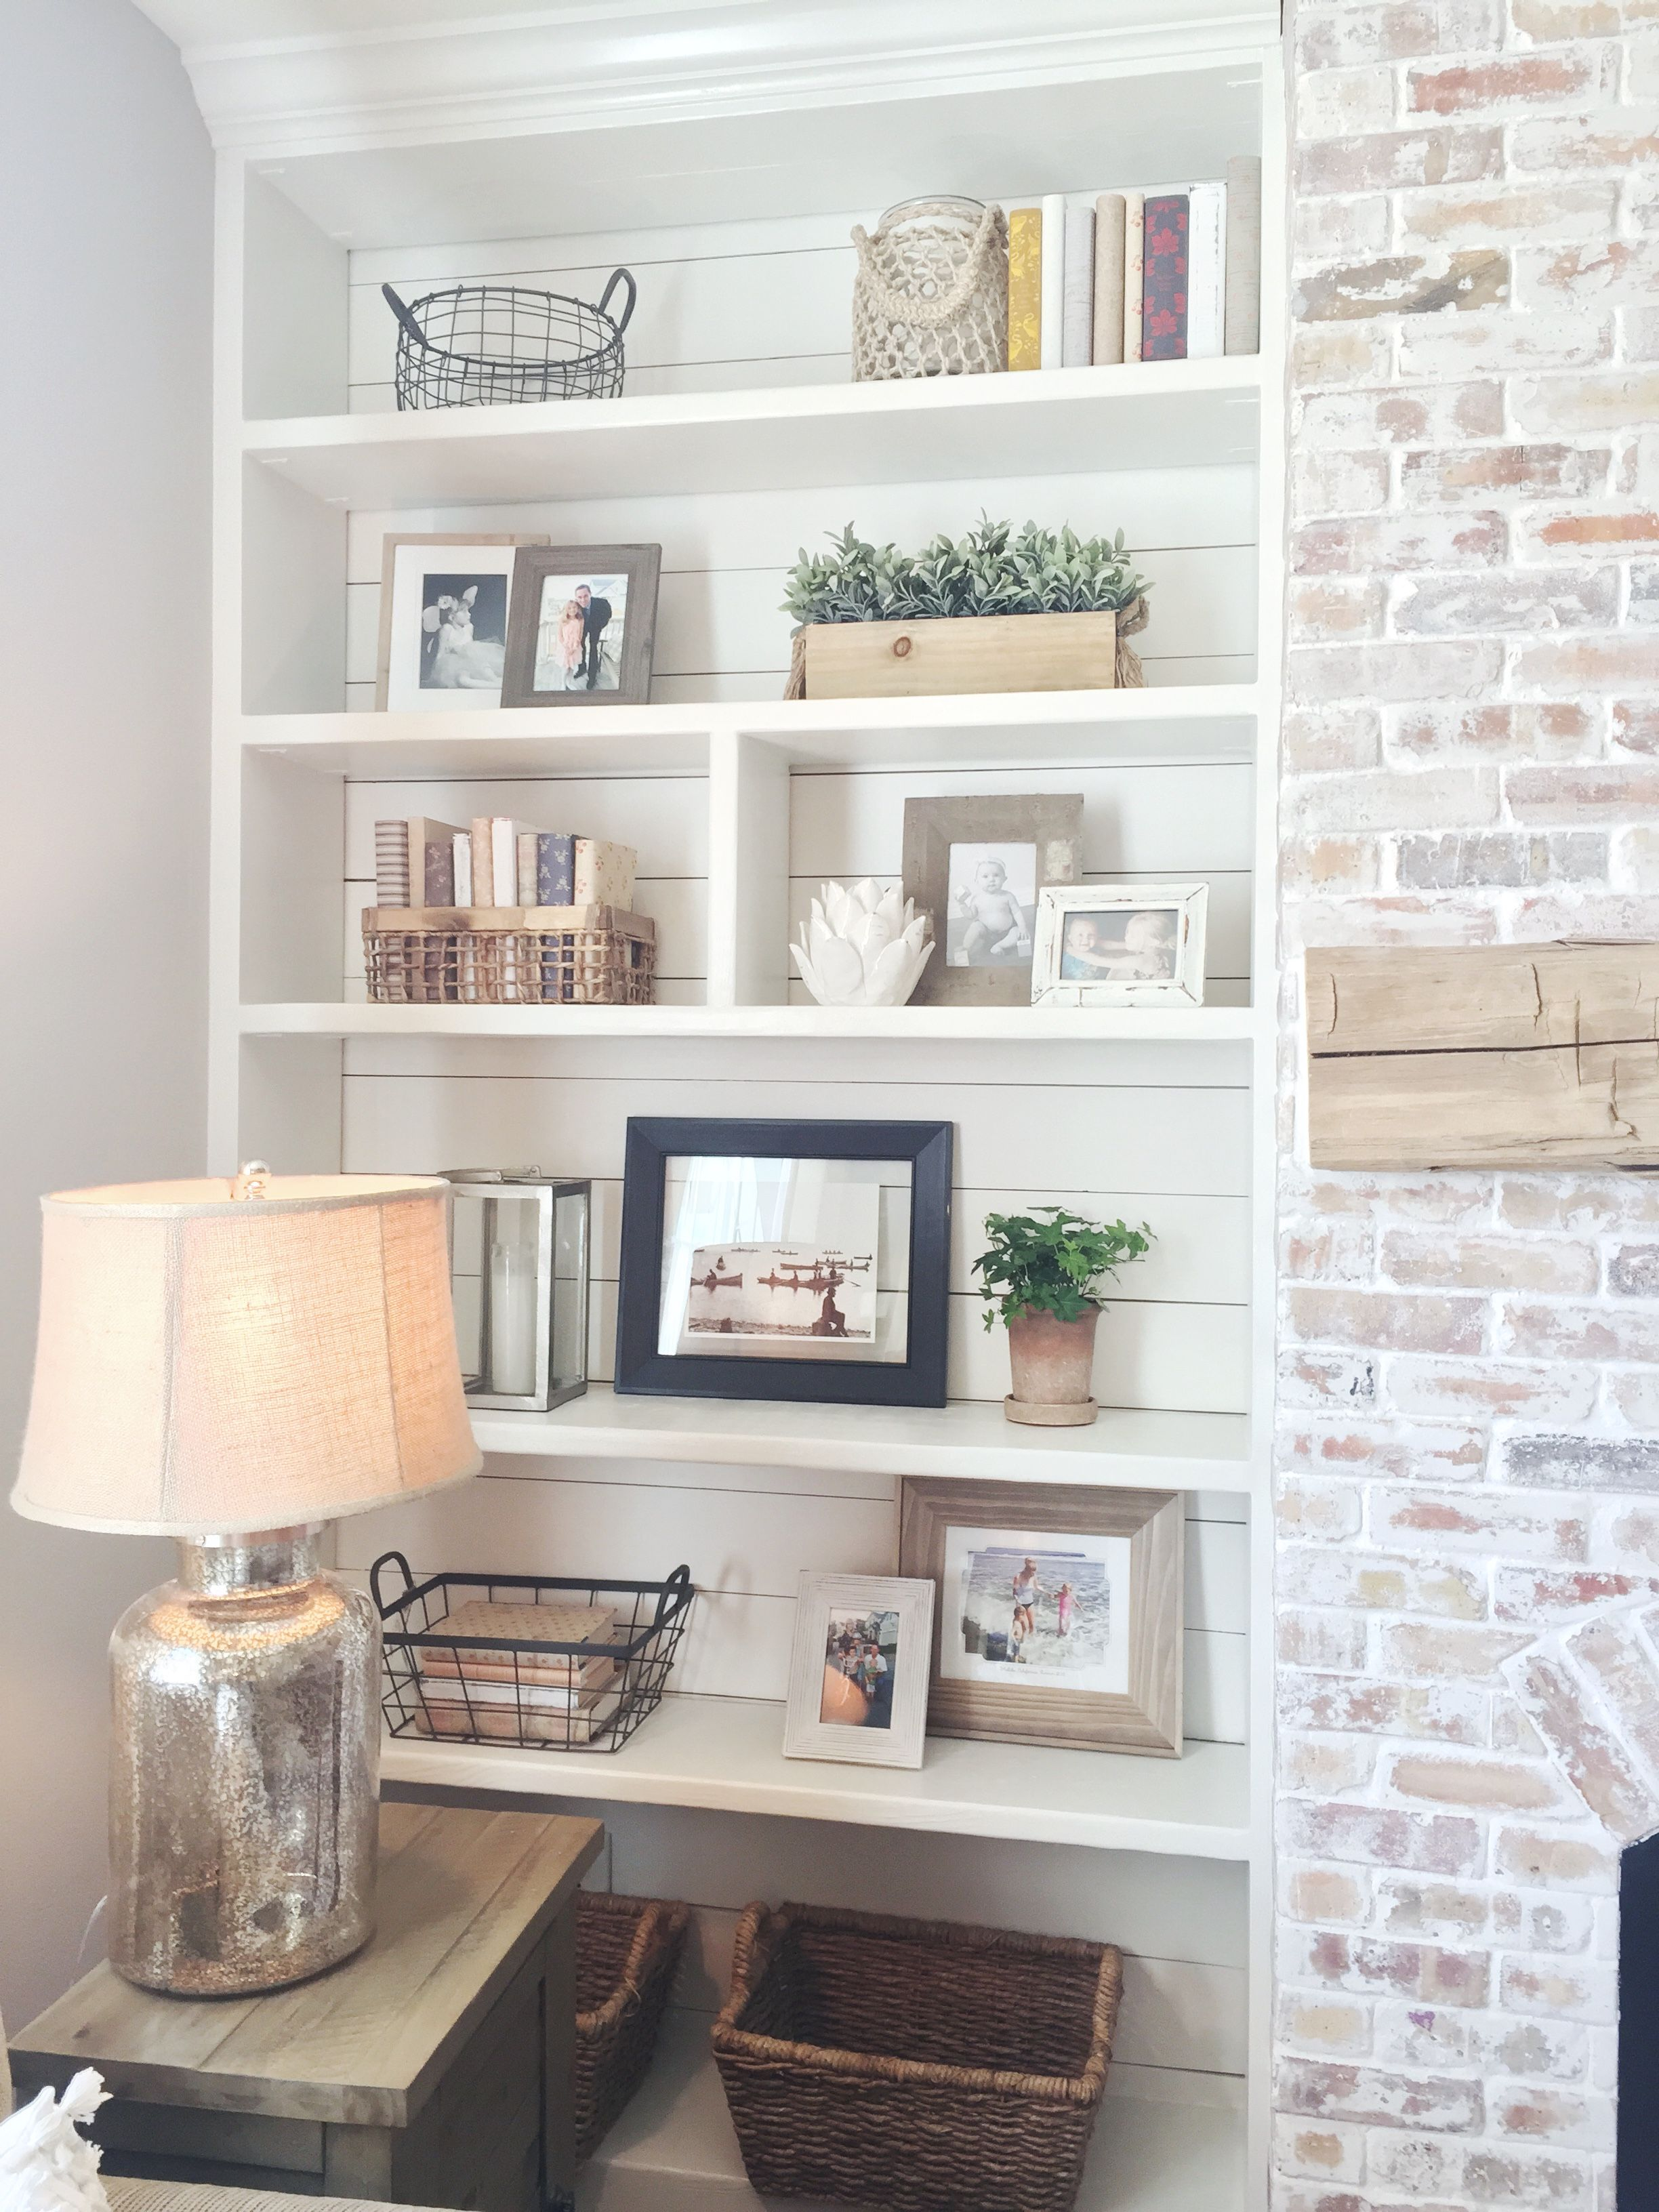 Built In Bookshelves Styling Shiplap Whitewash Brick Firep